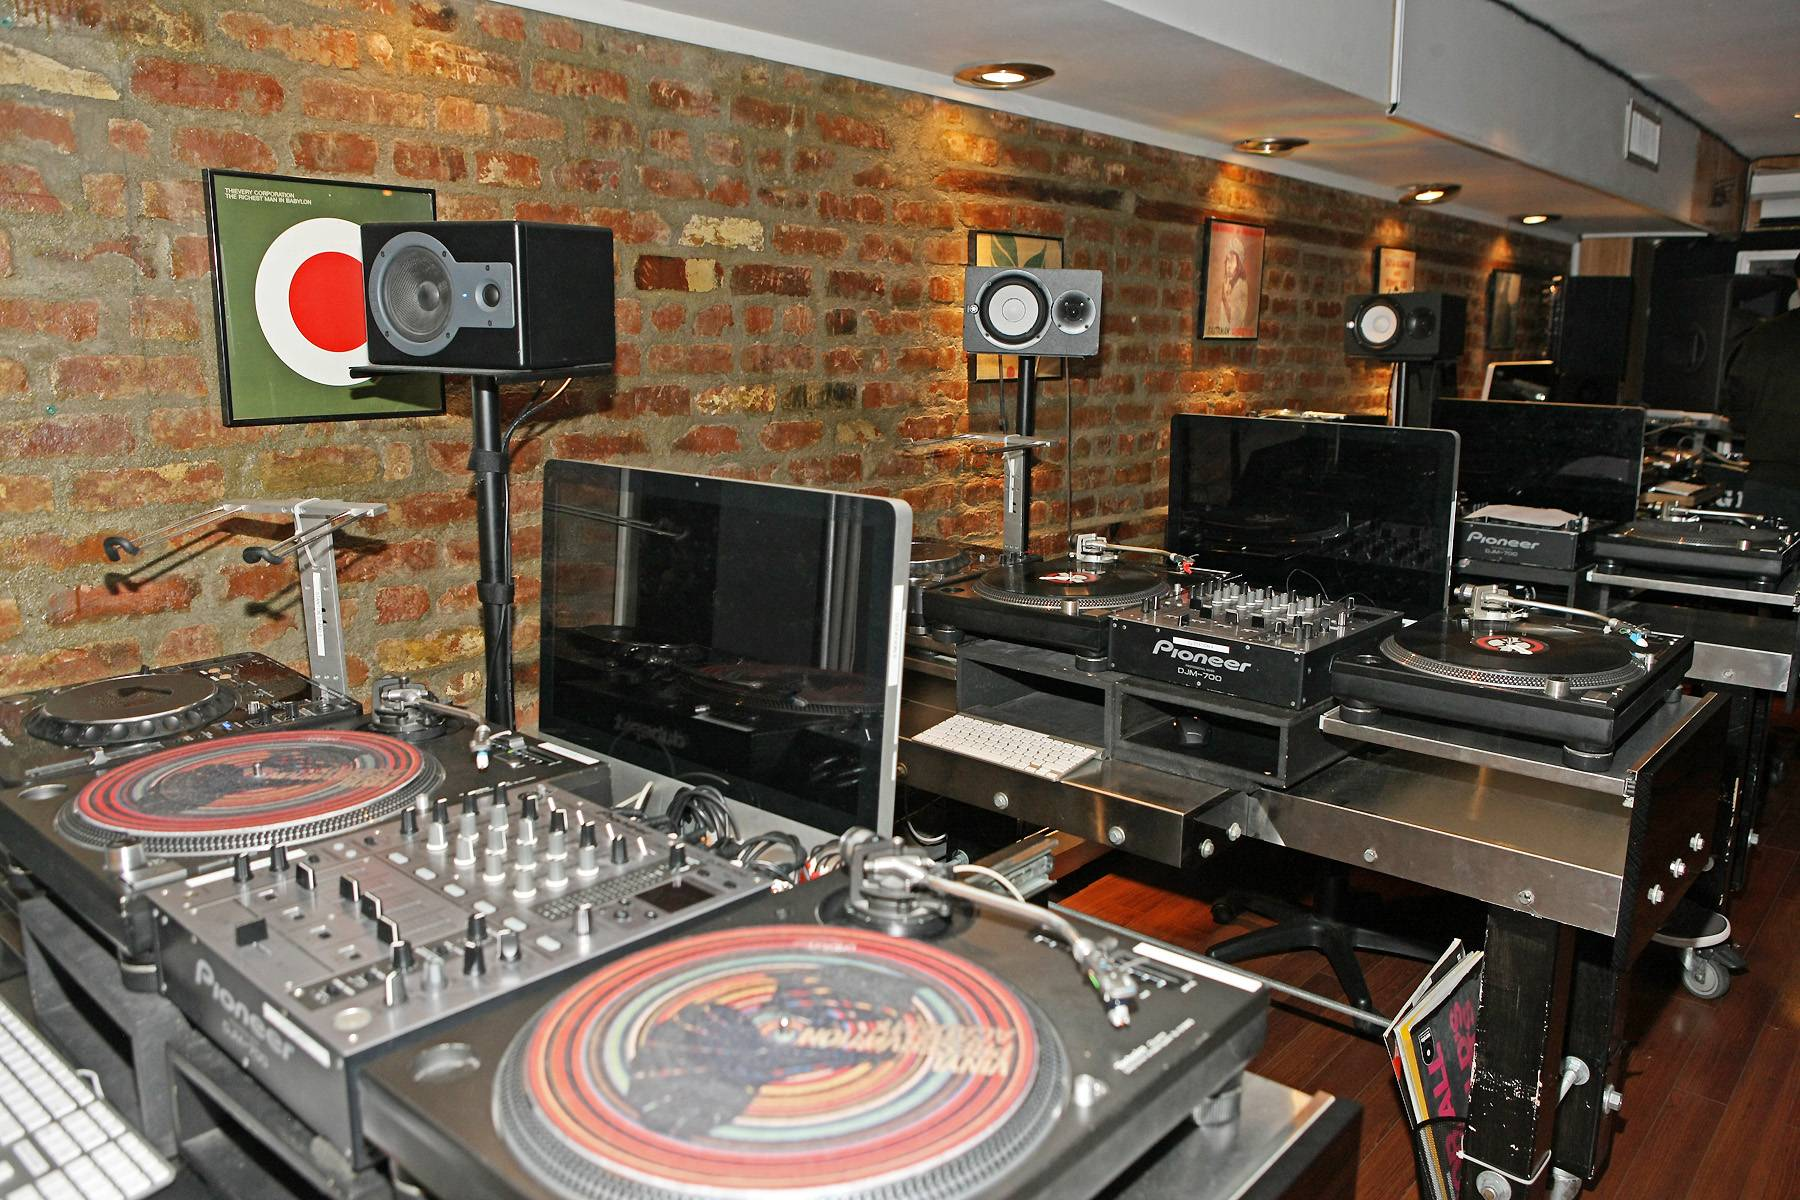 Mix Masters - Check out all the equipment at the Dubspot venue. (Photo: Bennett Raglin/GettyImages/BET)